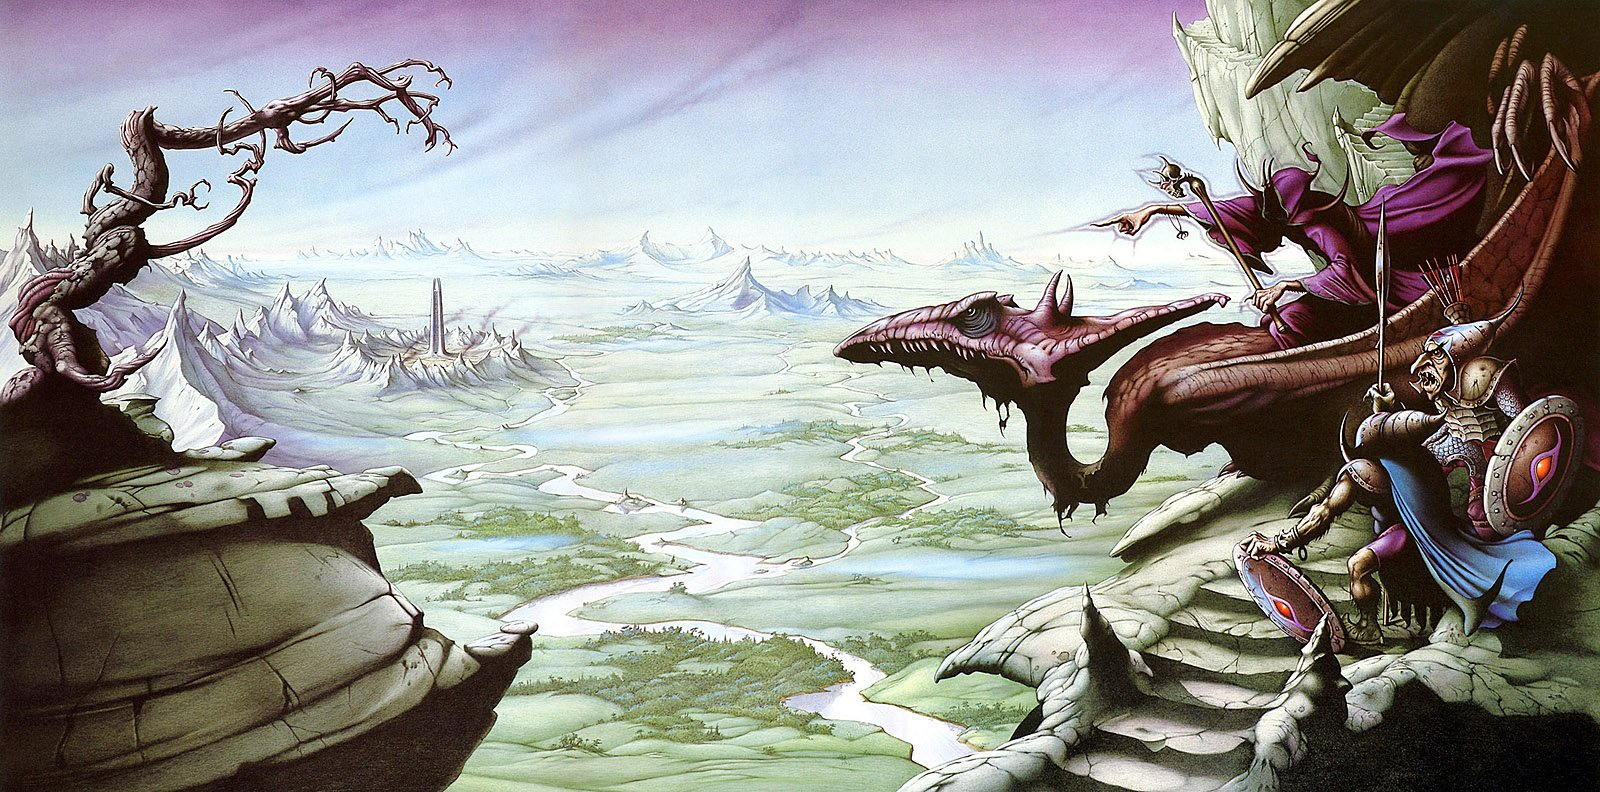 'A View Over Isengard' by Rodney Matthews (1979). https://t.co/7mnNwfa2H3